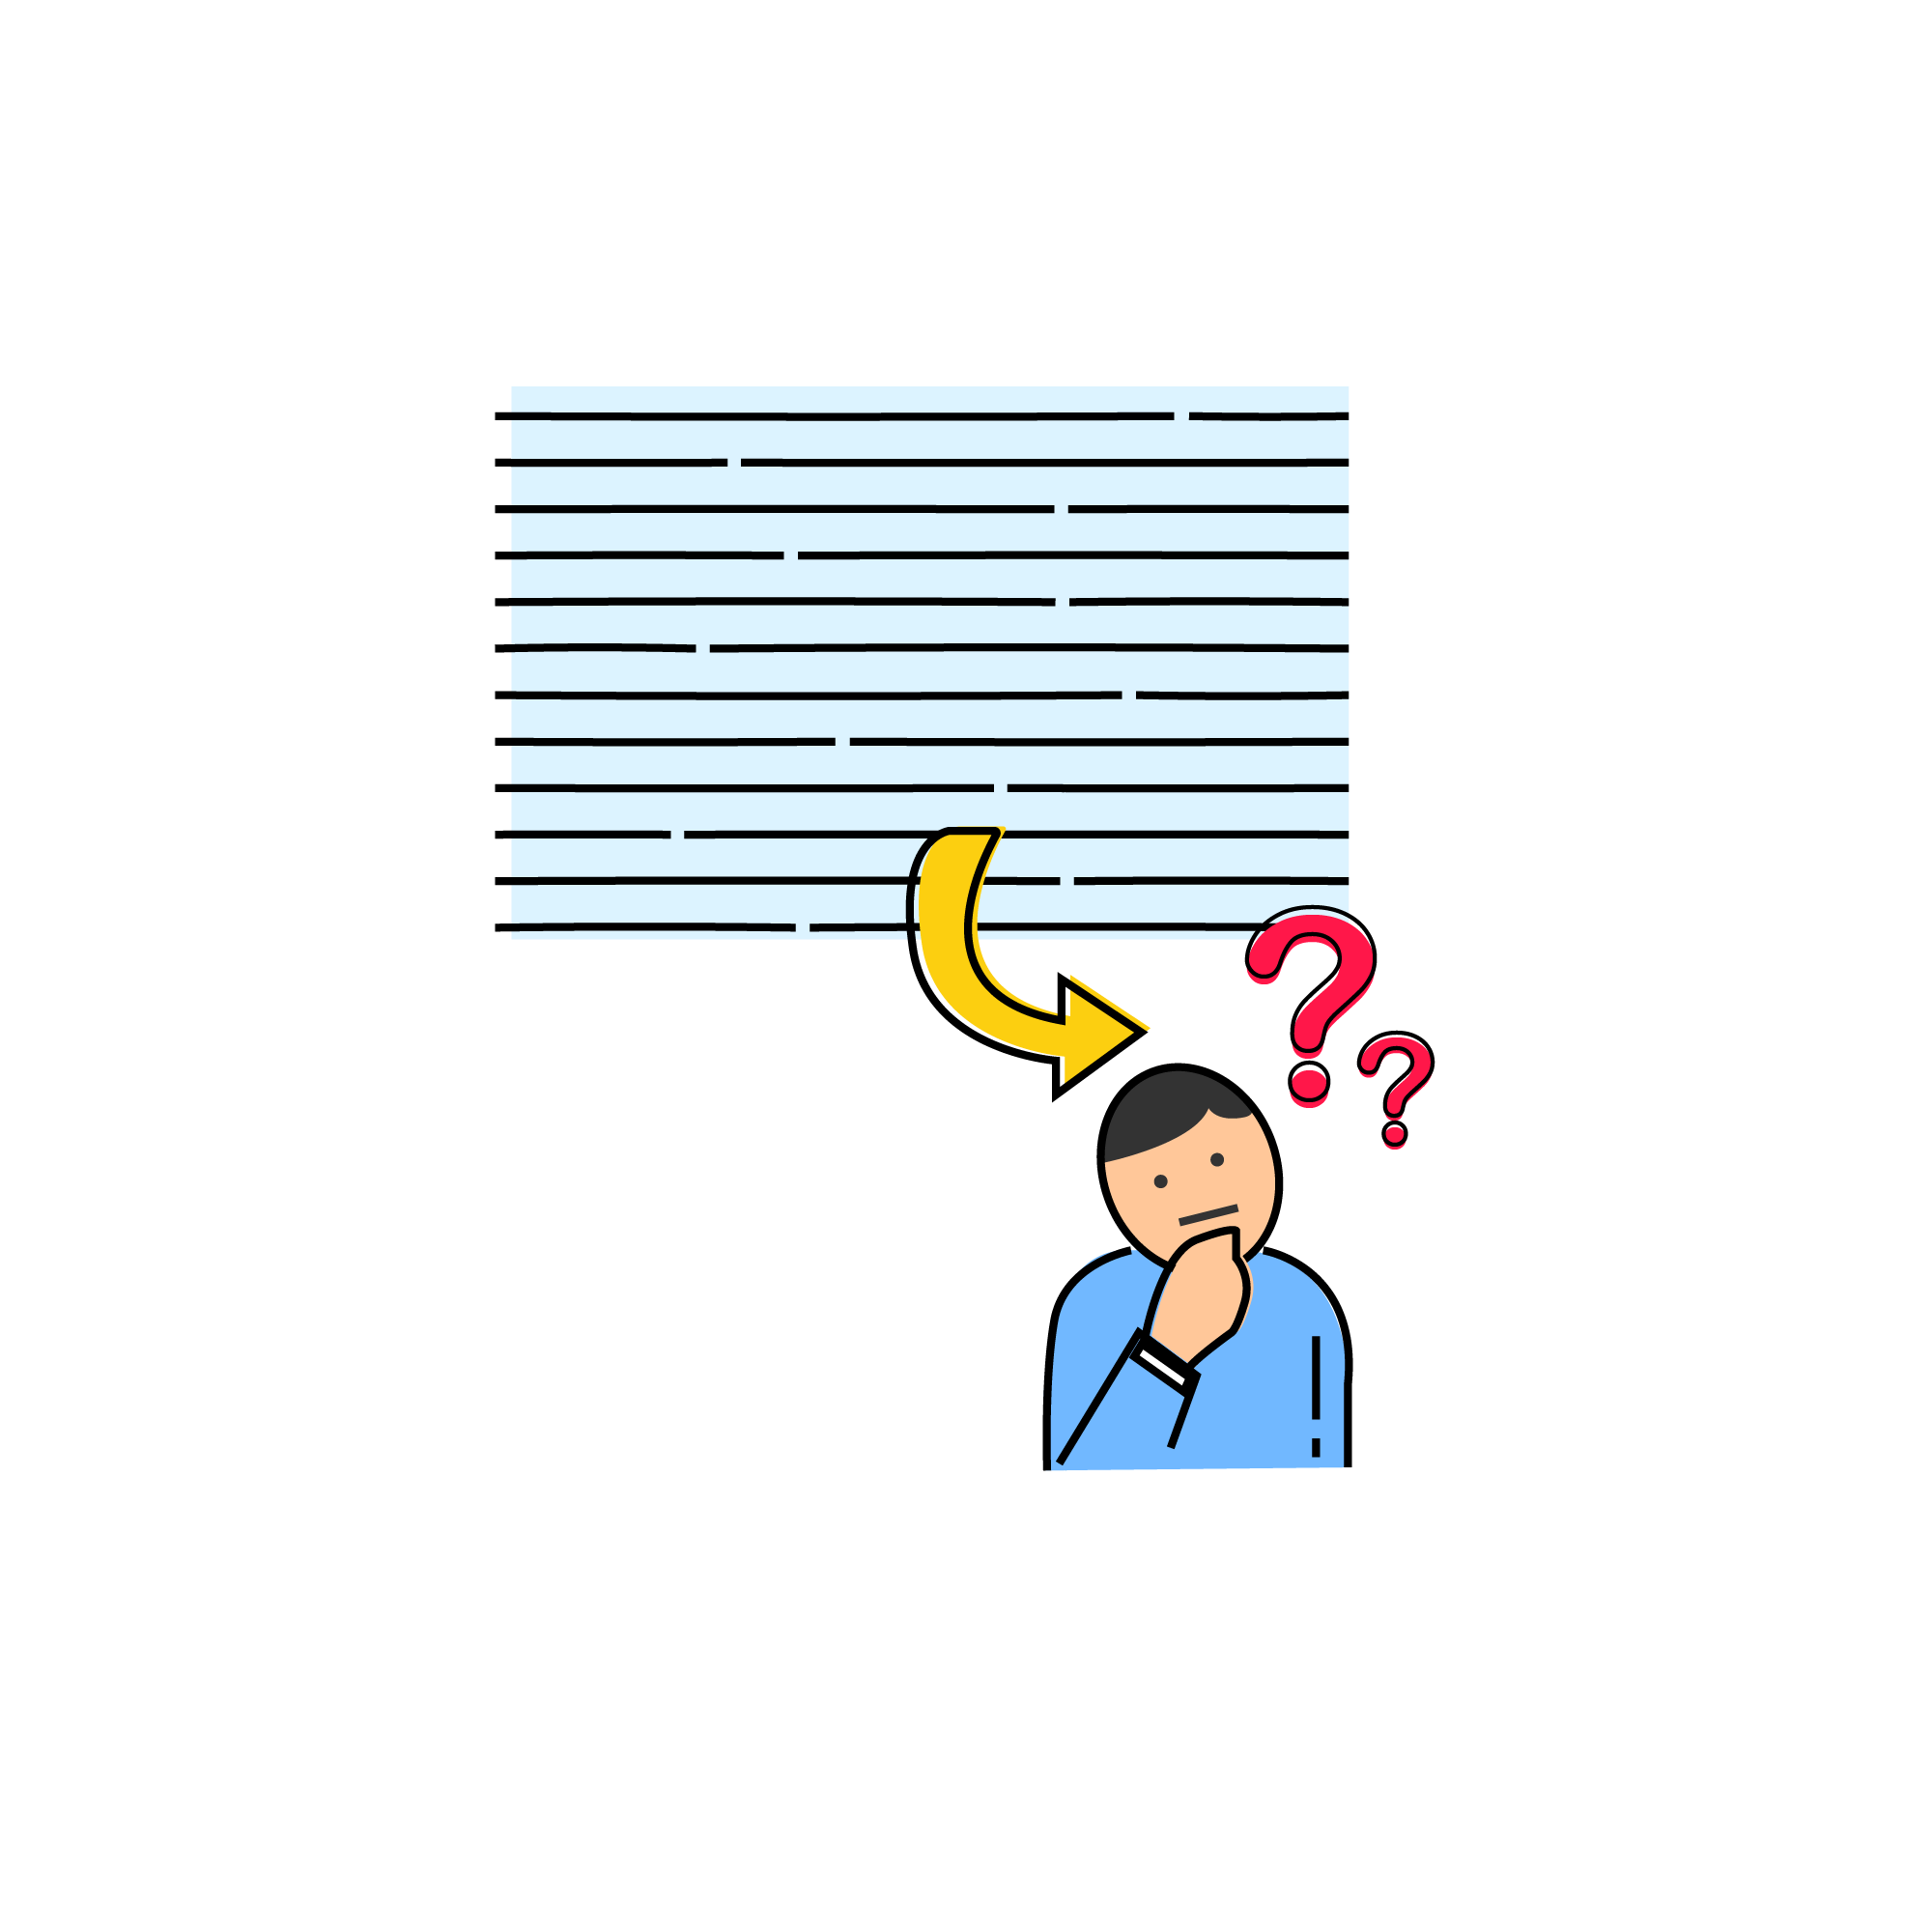 Inference questions tend to be among the most challenging types of Reading Comprehension questions on the SAT. Instead of testing your understanding of what is in the text, inference questions test your understanding of what isn't in the text.